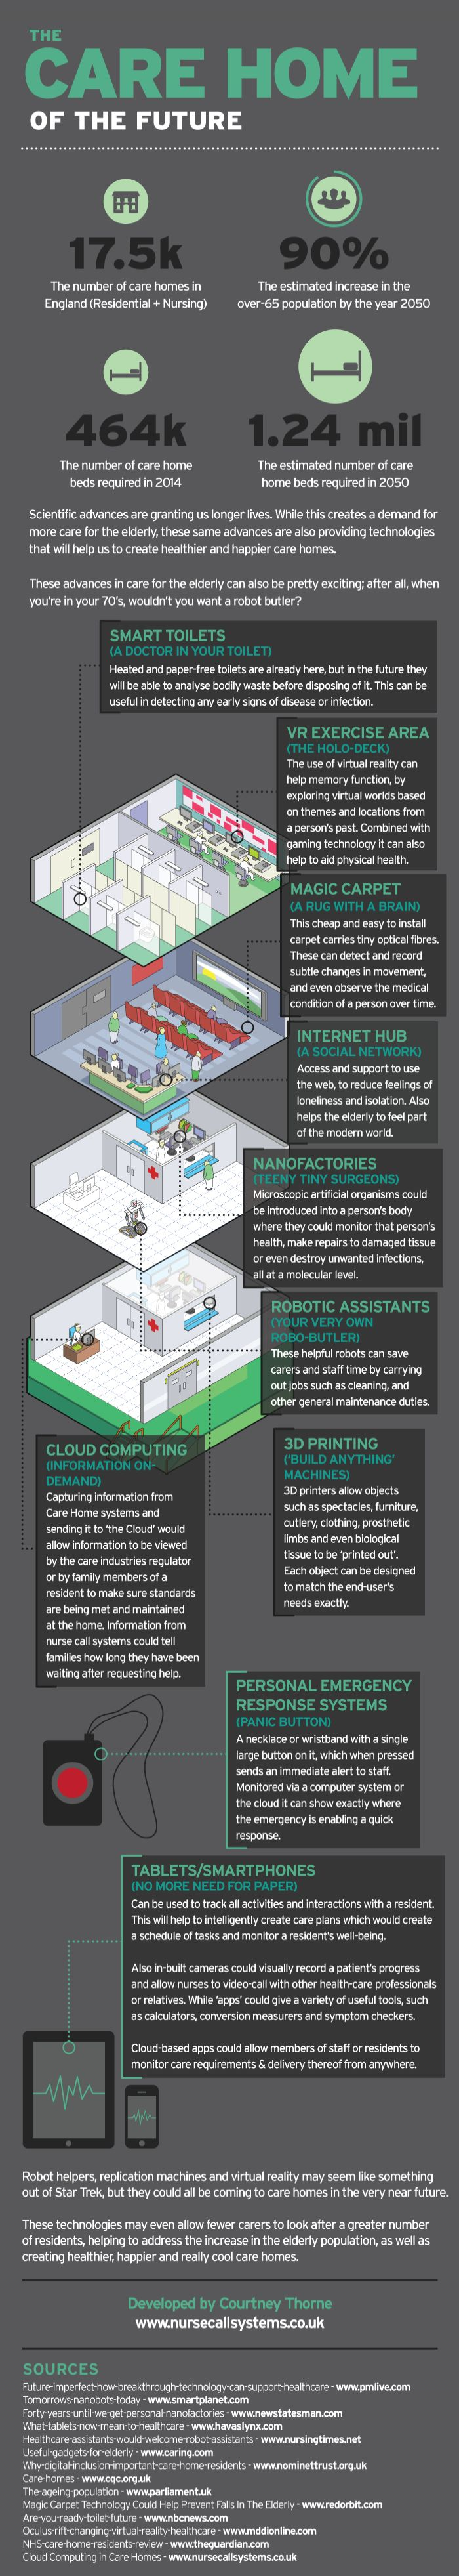 #INFOgraphic > Home Care Technology: Longevity has undoubtedly increased due to a series of technological breakthroughs. And so has the demand for home care of the elderly. Have a look at facilities and technologies expected to operate in care homes within the coming years.